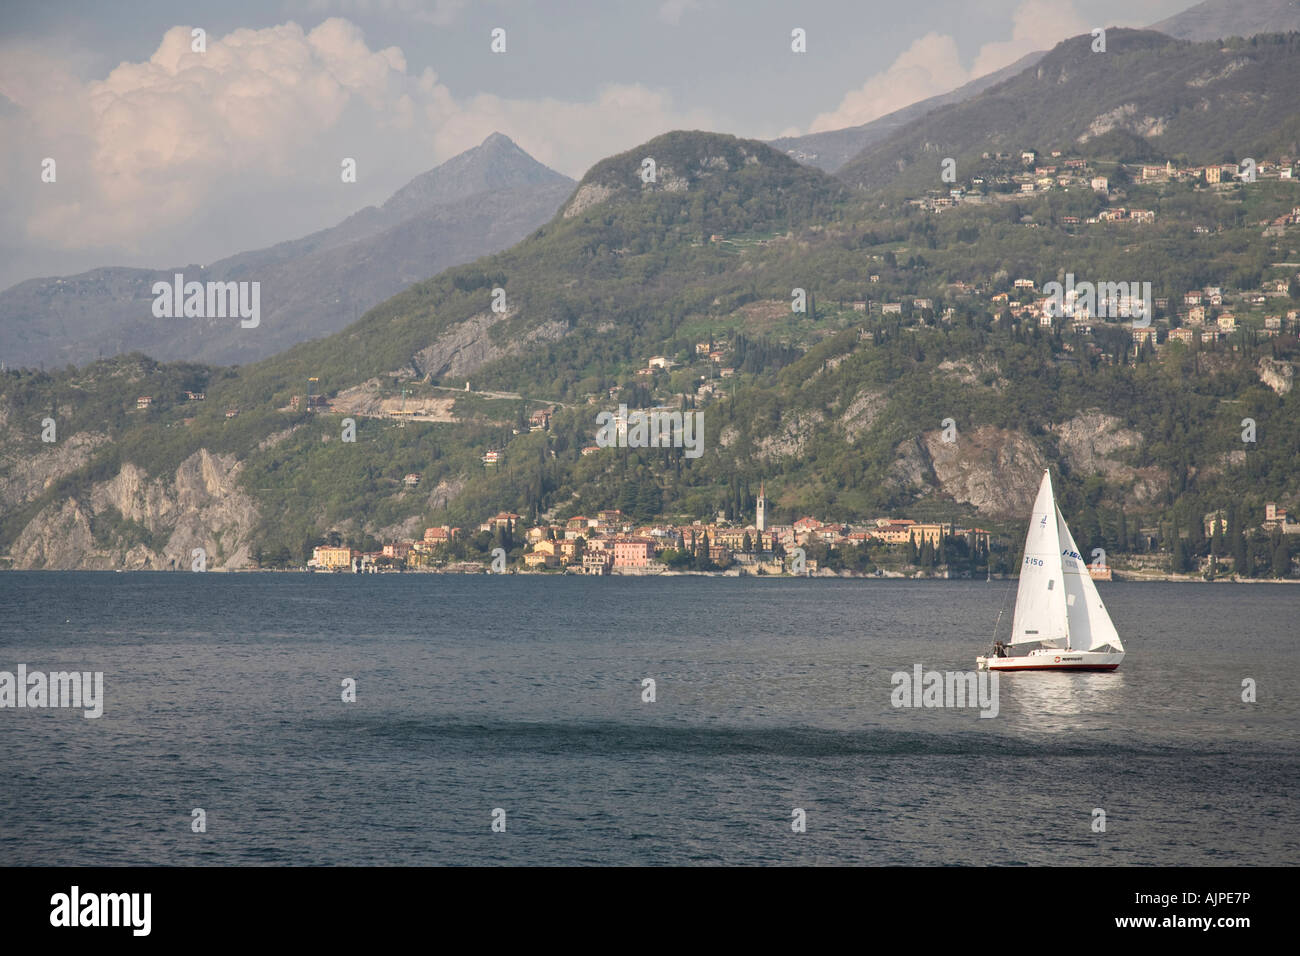 Yacht sails between Varenna and Bellagio on Lake Como, Italy - Stock Image